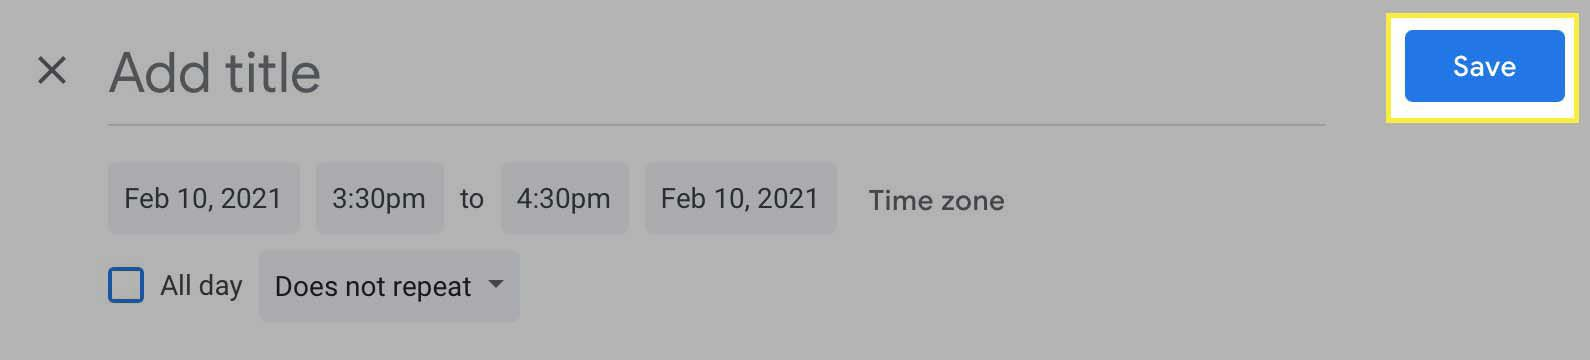 The Save button highlighted to save the meeting you've created in Google Meet.